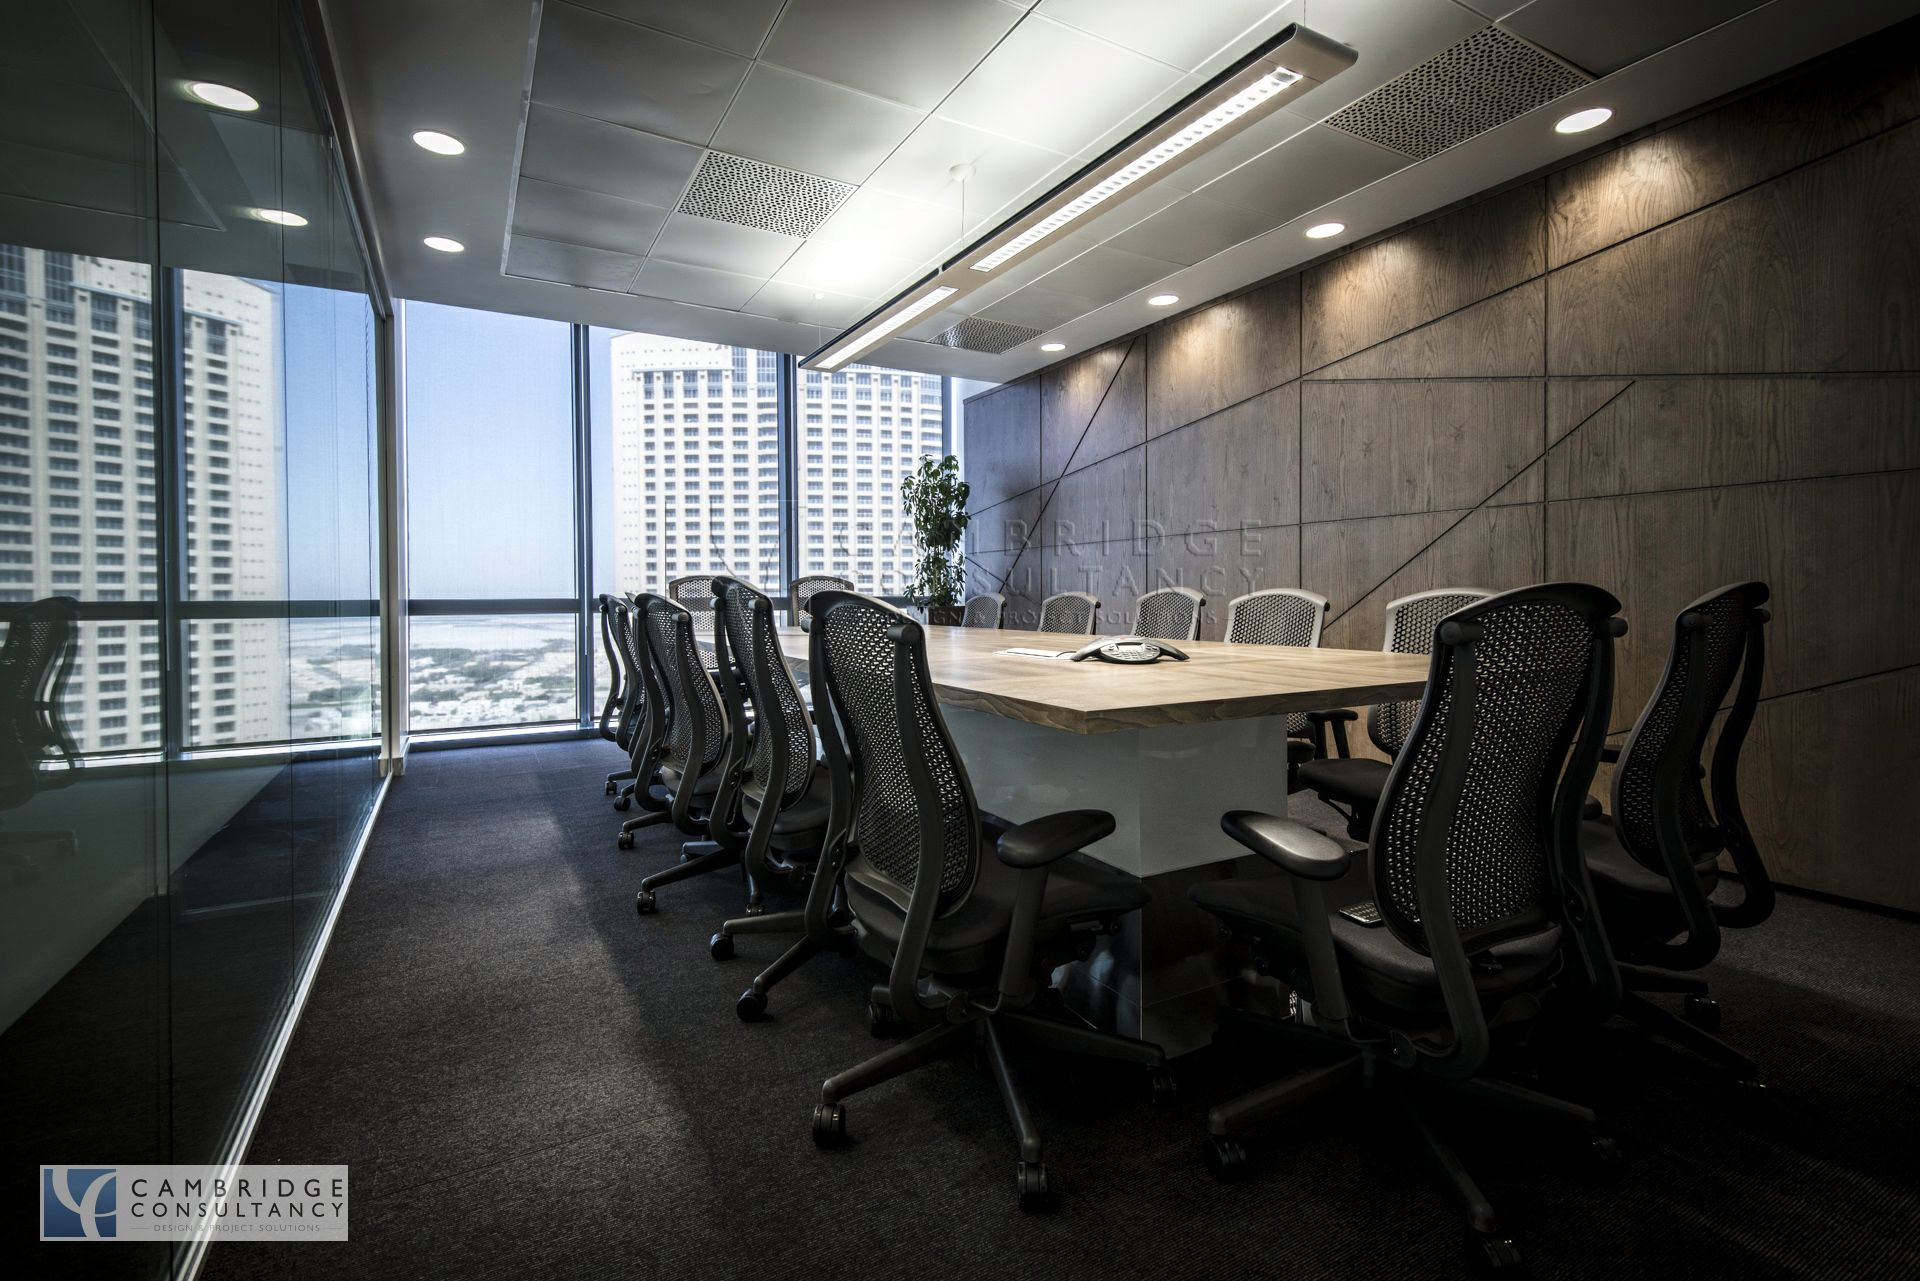 Wsp Office Modern Design Open Ceiling Industrial Aluminium Spiral Ac Ducting All Those Elements Make An Amazing Space De Office Space Office Design Design